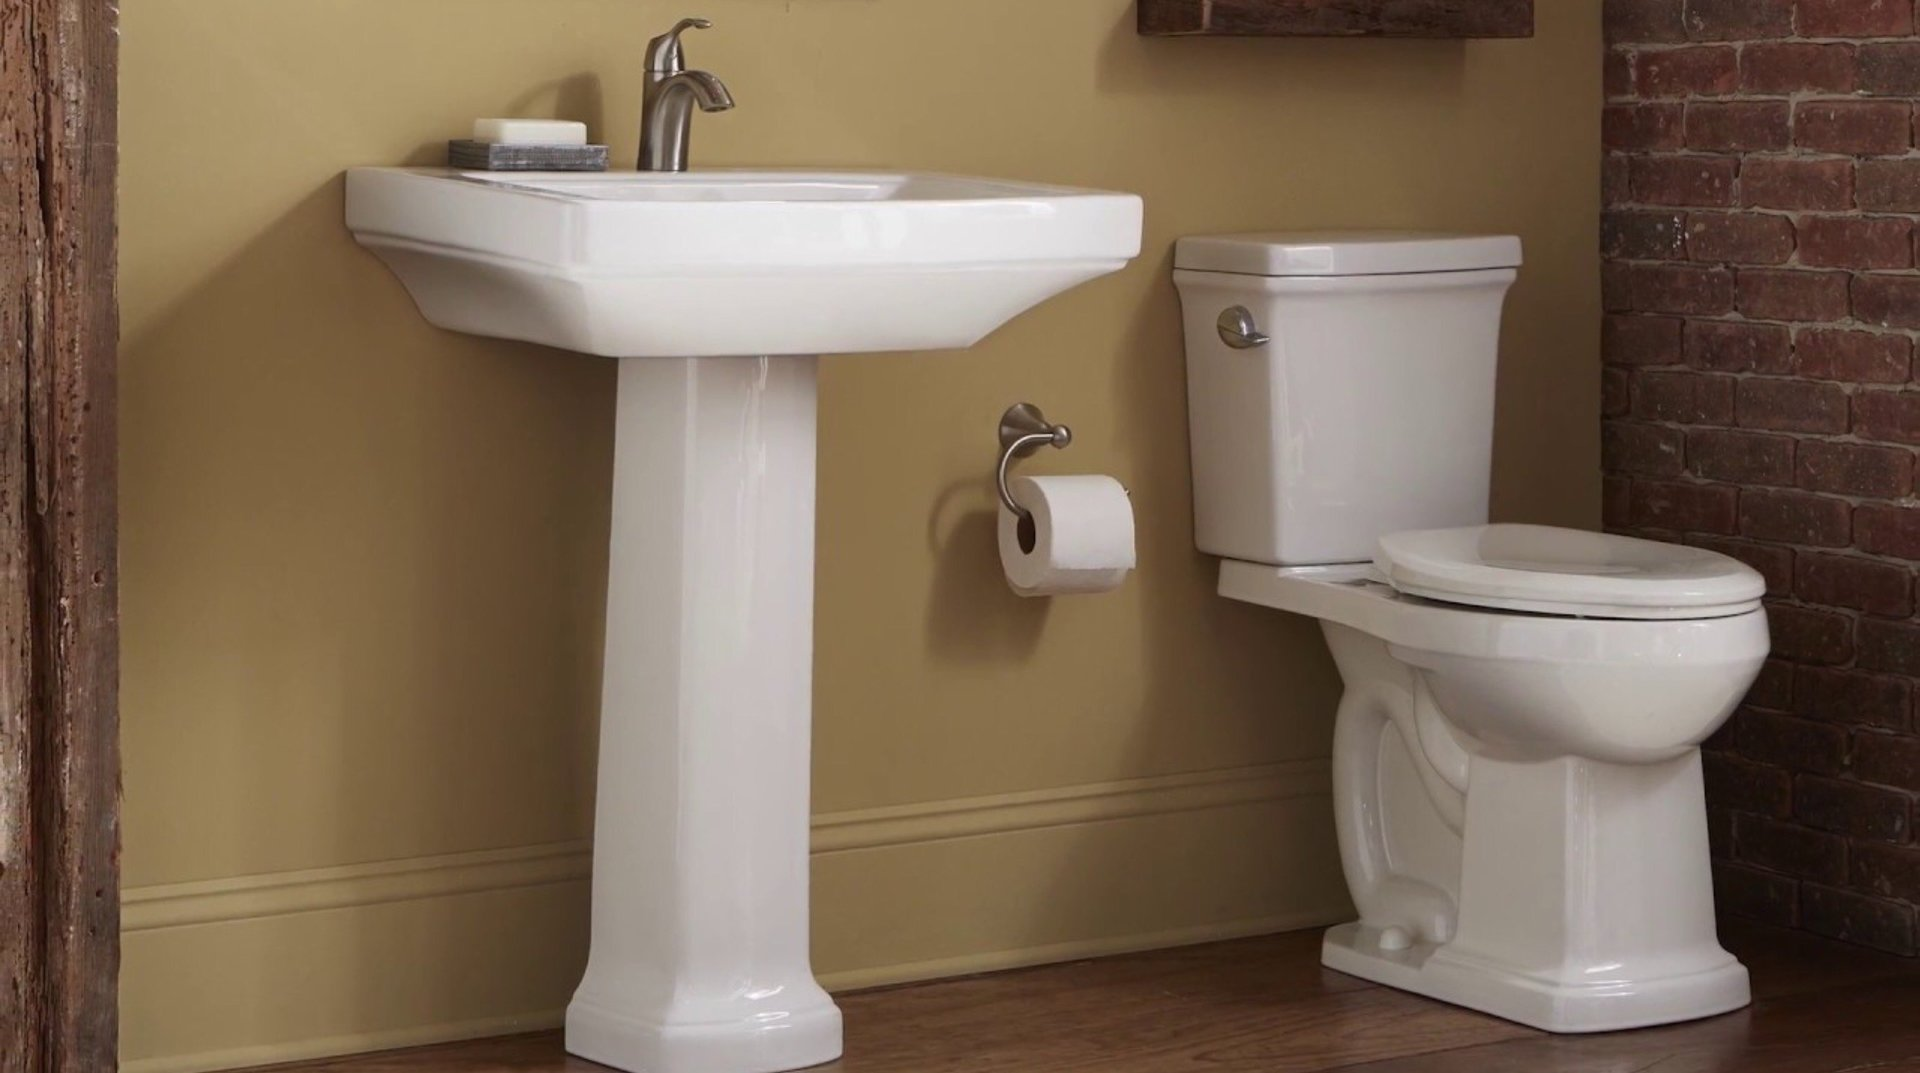 Remodeling | Bathroom Fixtures | Rockford, IL